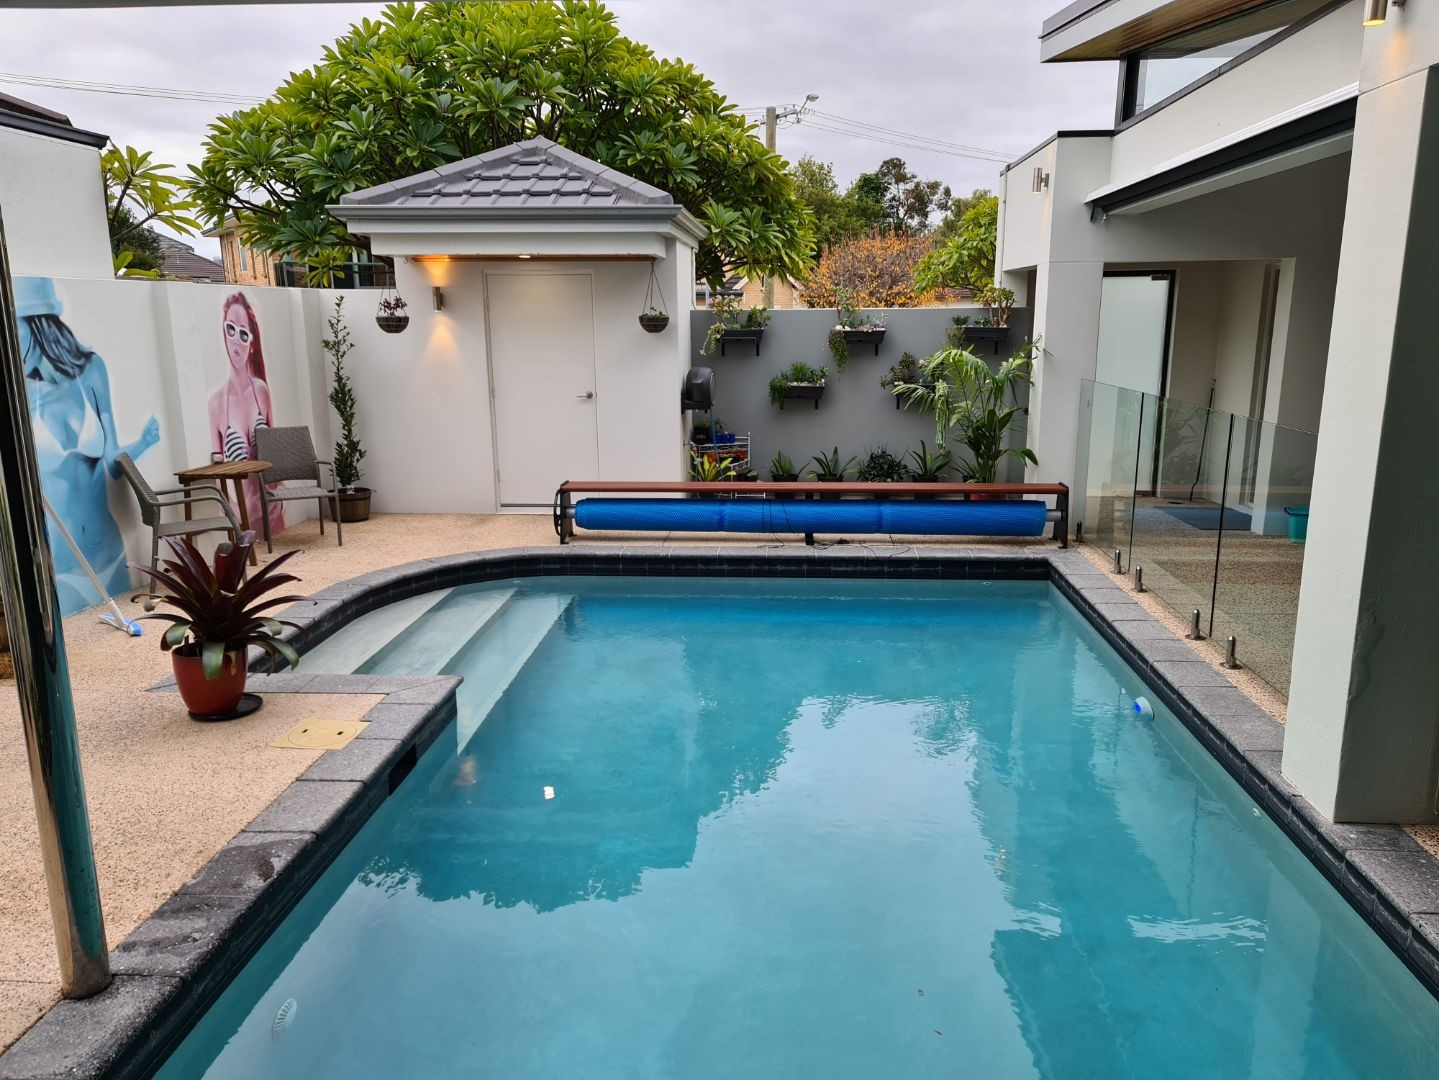 Combo Seat in backyard with uncovered pool